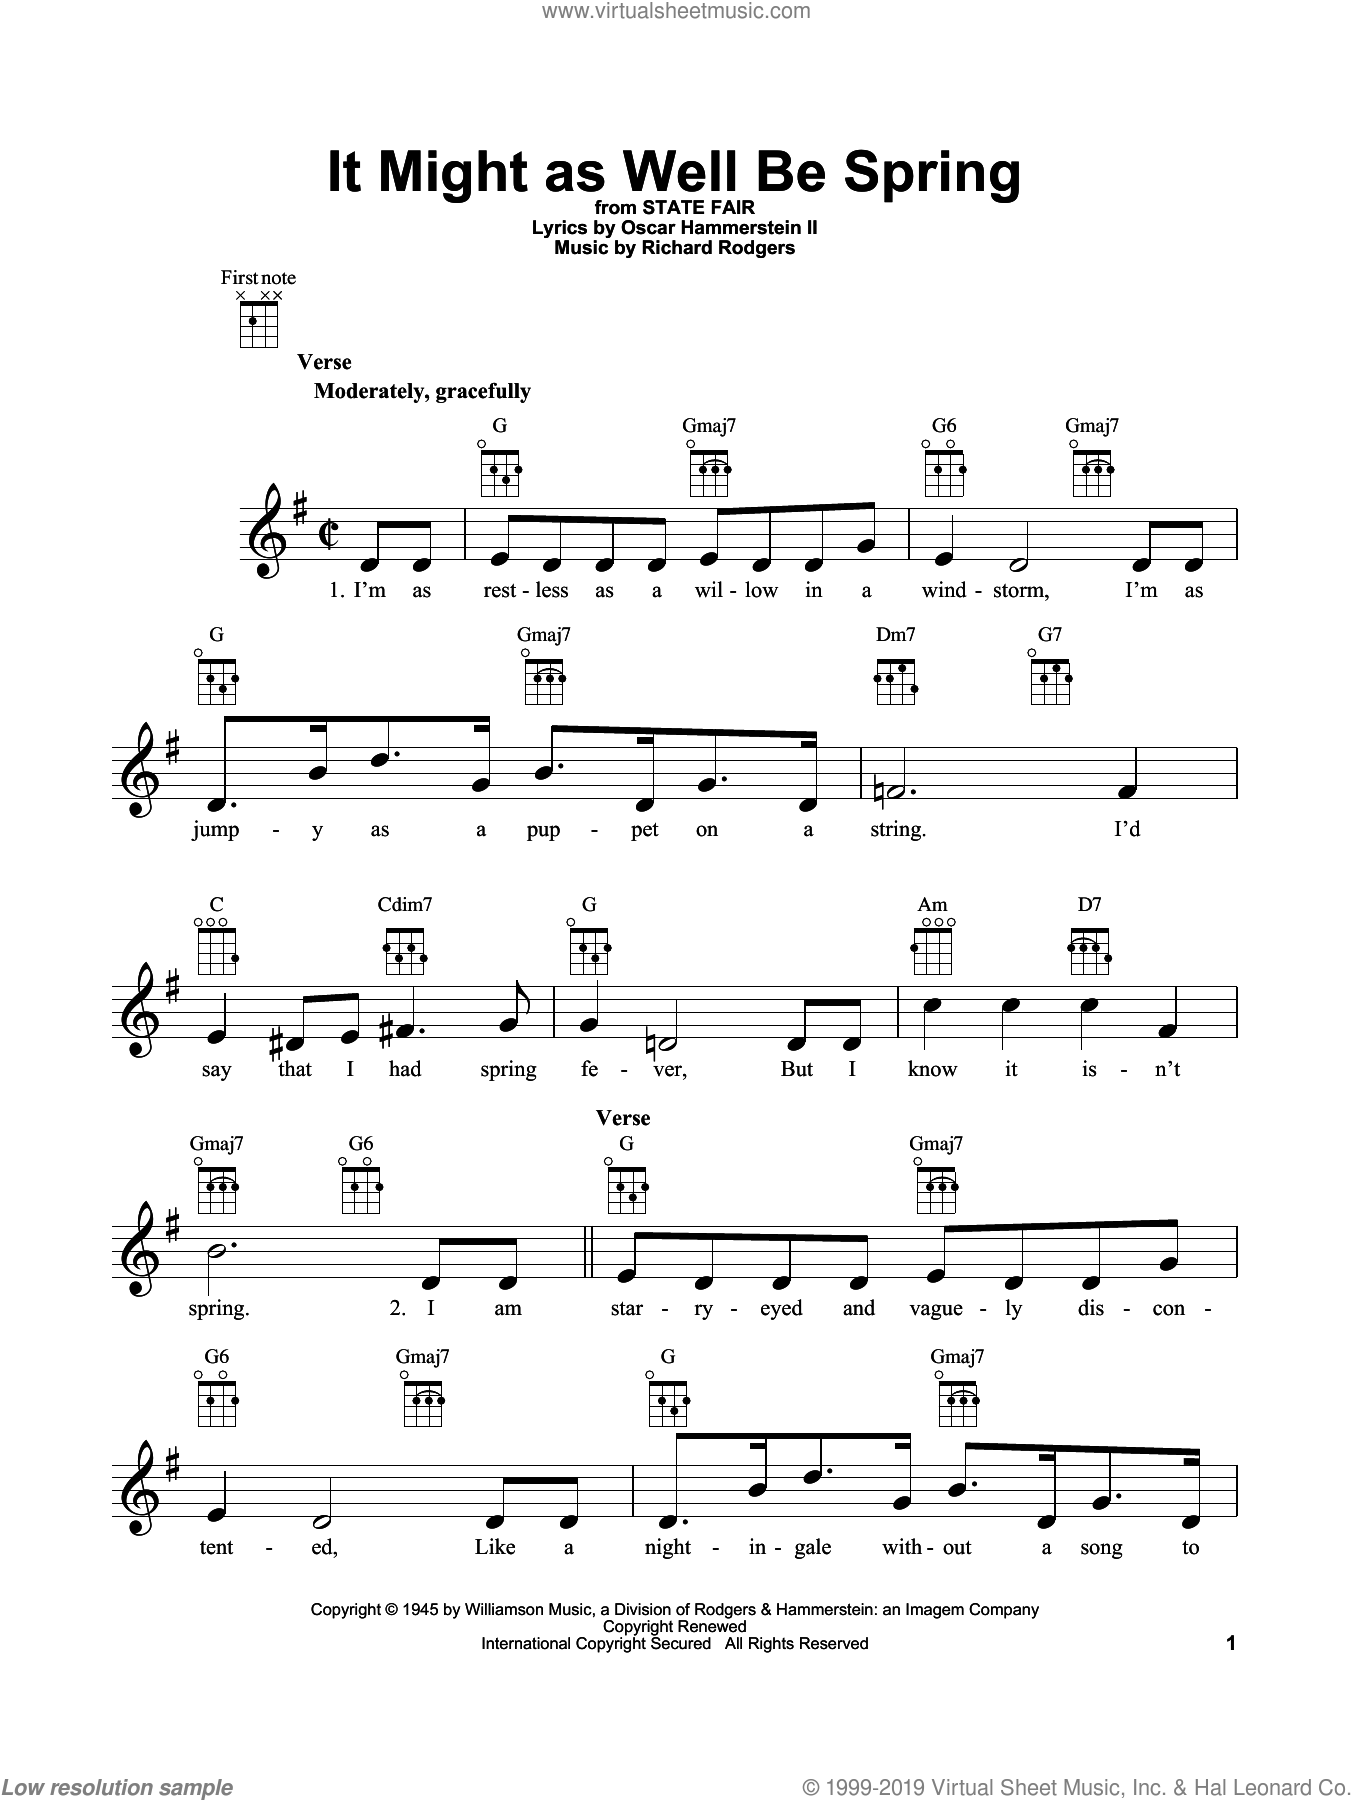 It Might As Well Be Spring sheet music for ukulele by Richard Rodgers